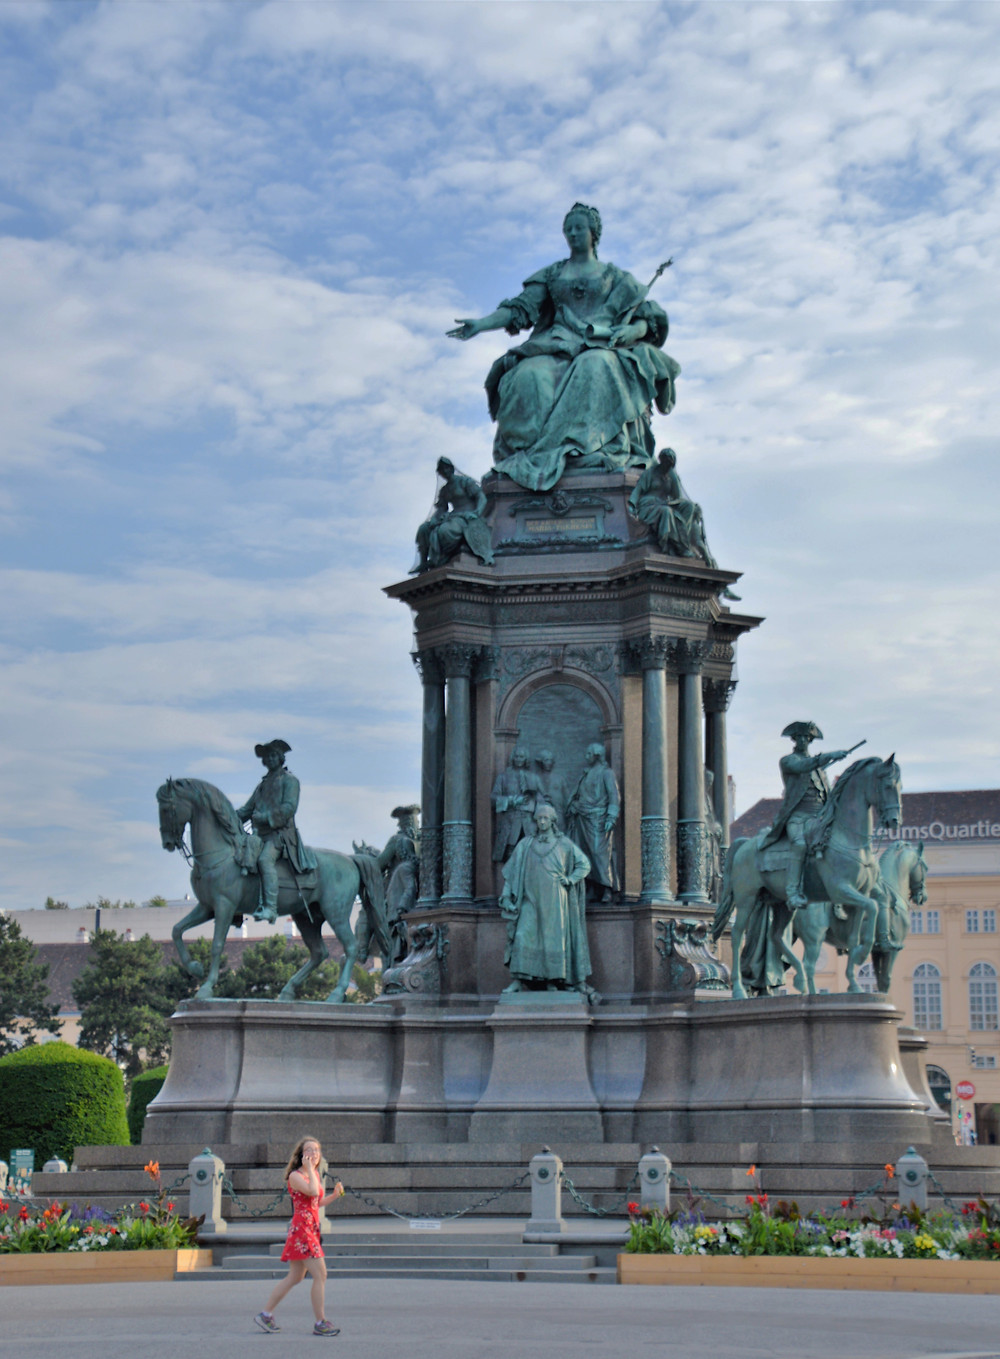 The Empress Maria Theresa monument in Museum Square in Vienna